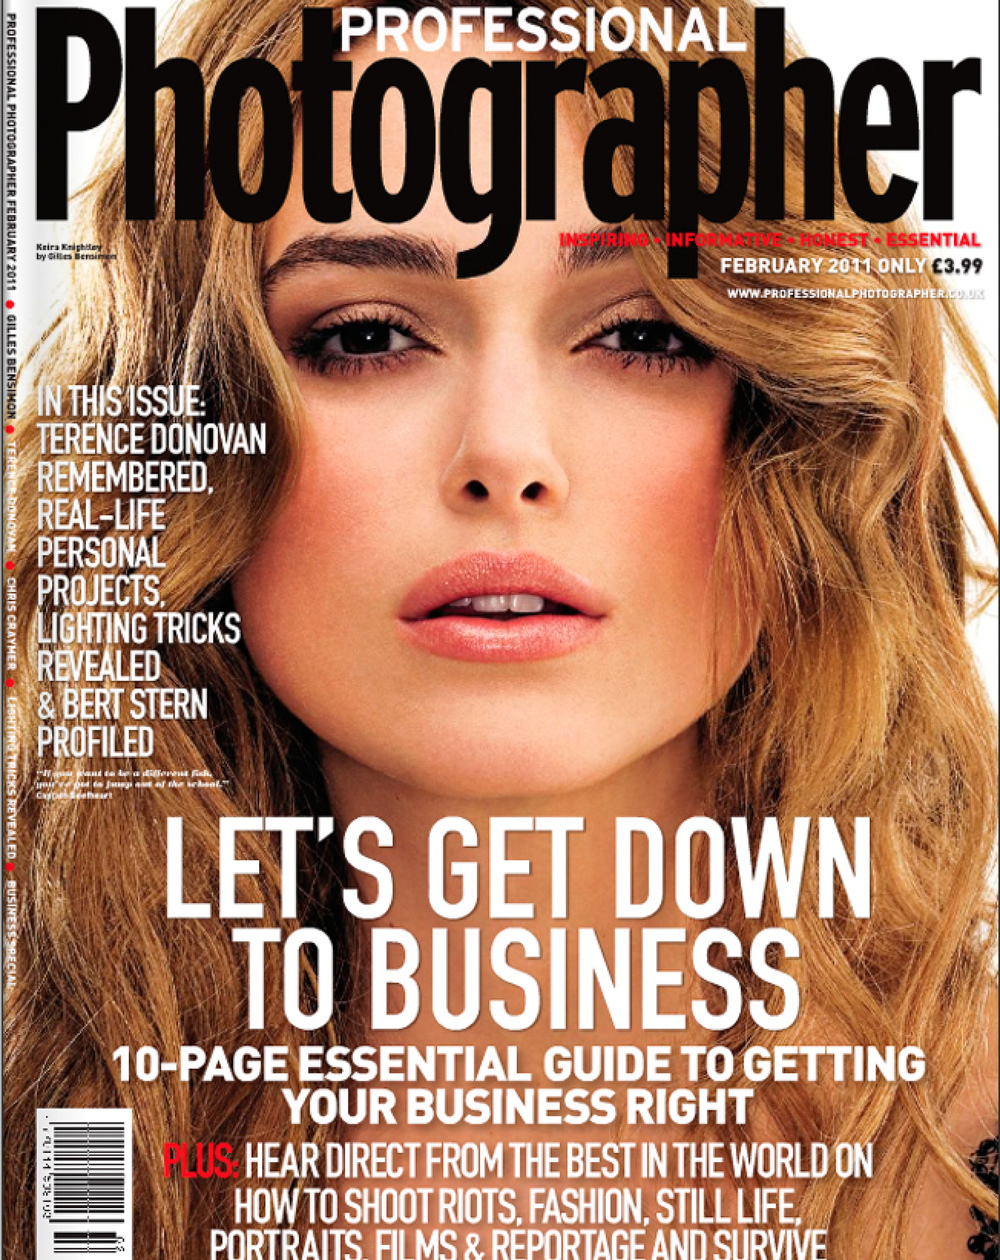 Photo professional magazine uk Professional Photography Mag - Home Facebook